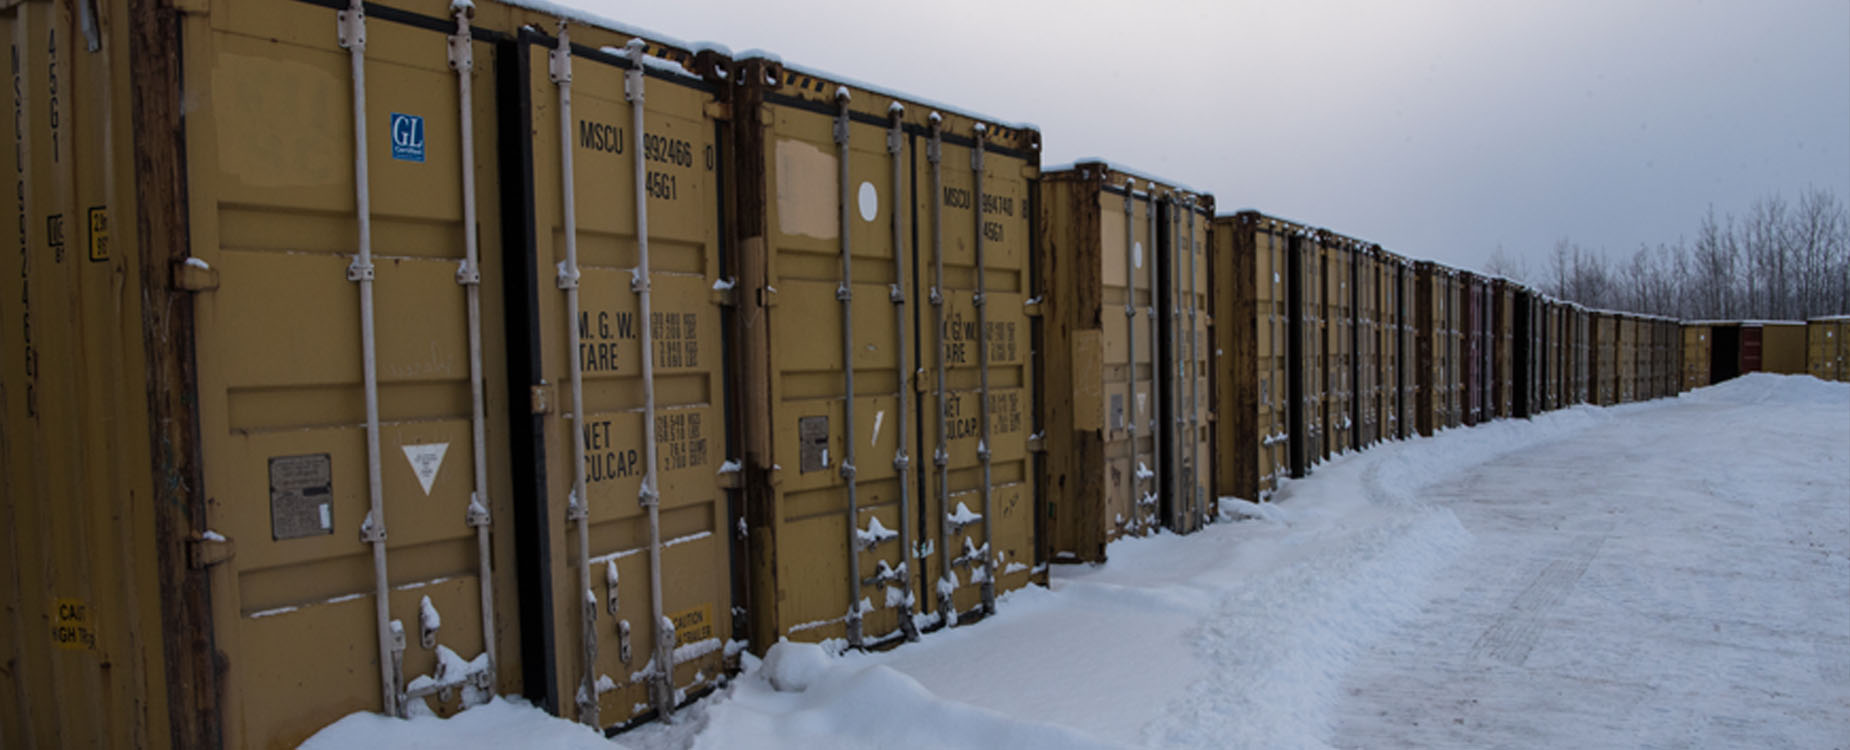 Welcome to Alaska Custom Containers & Storage